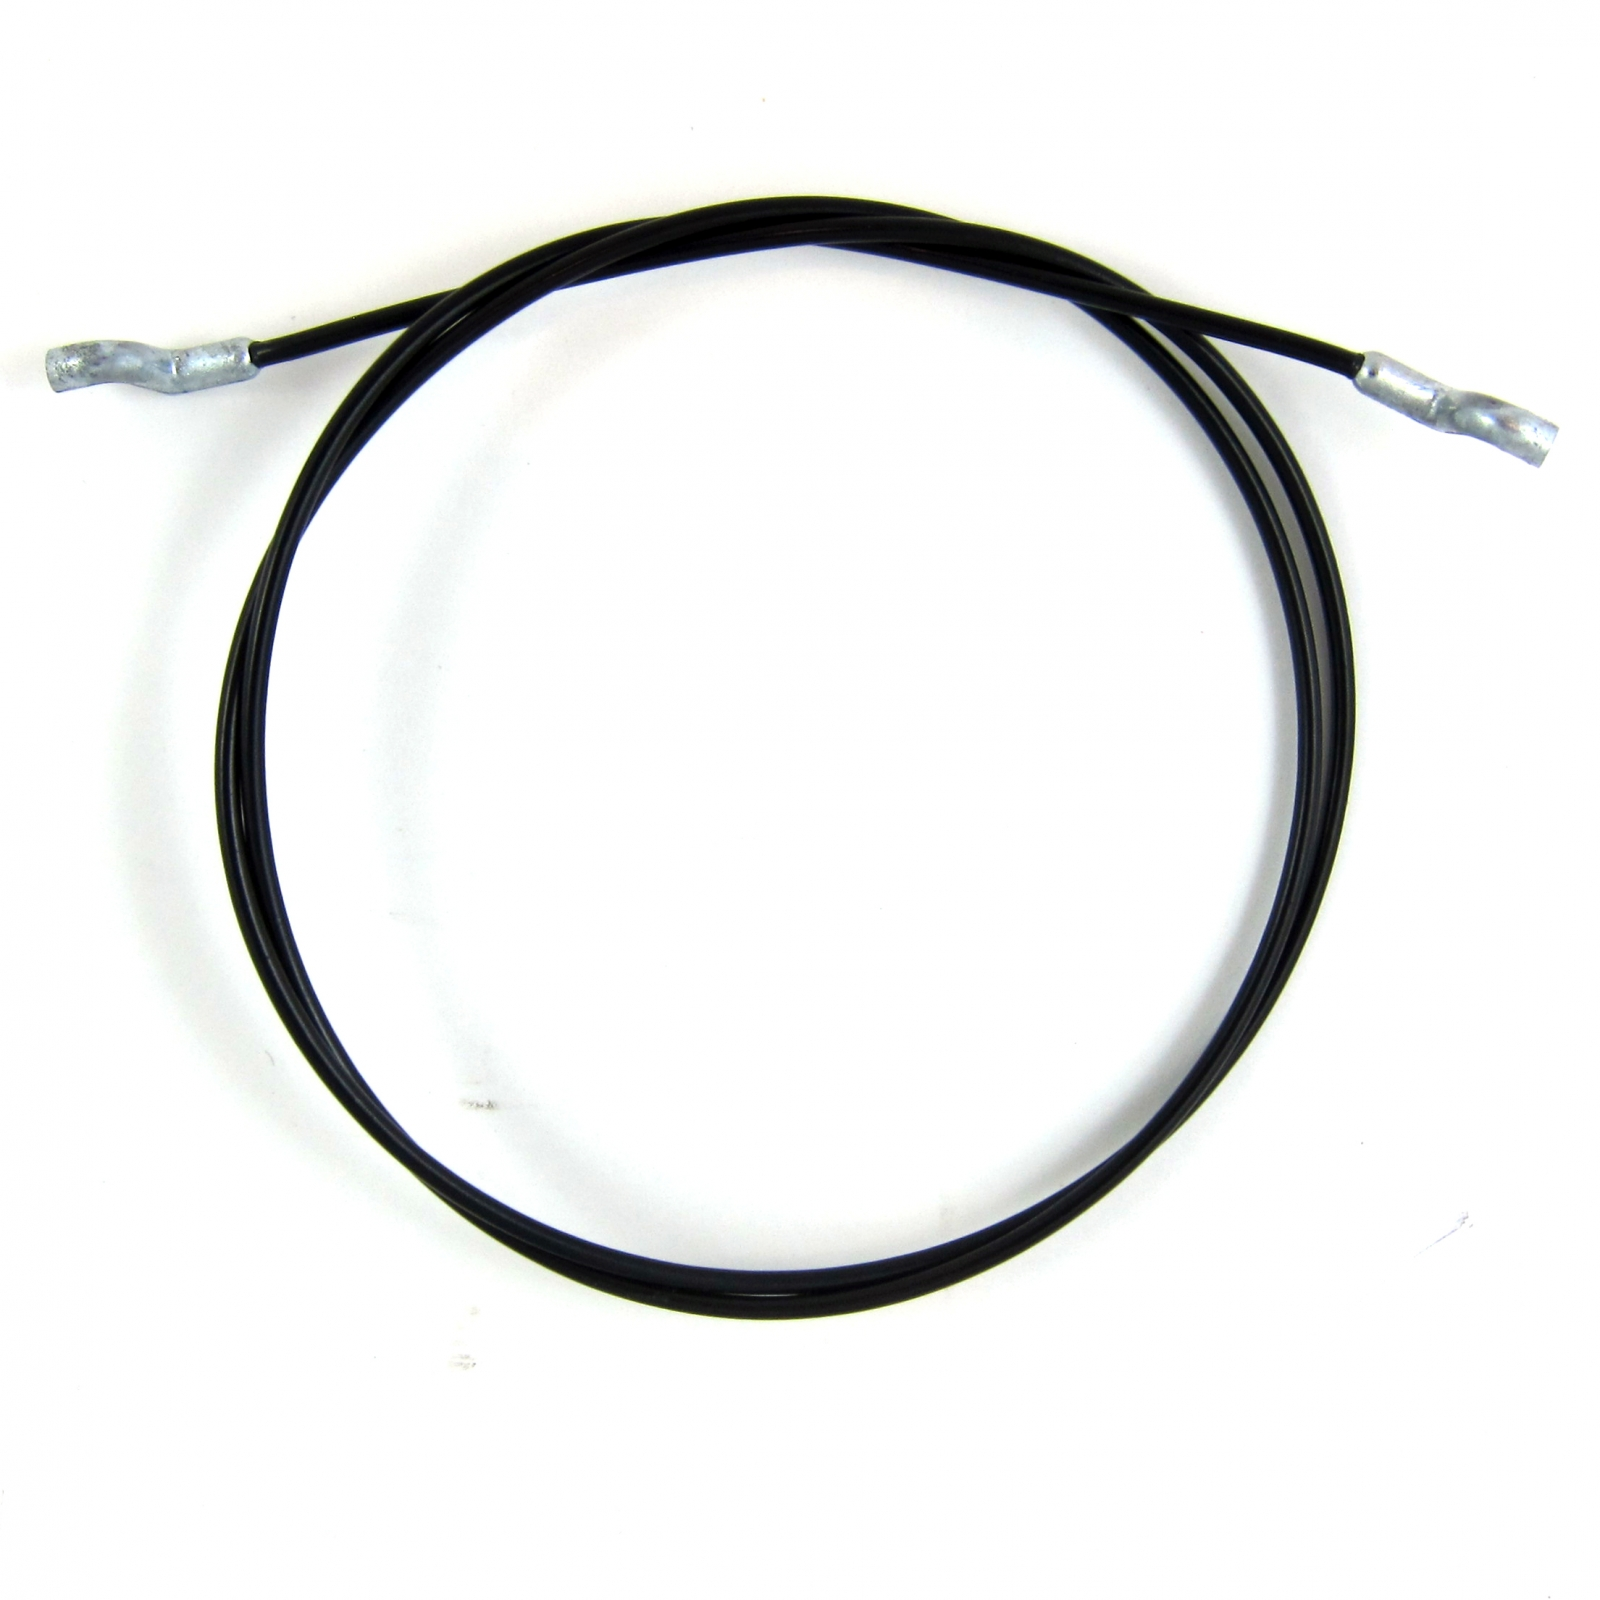 Honda Clutch Cable (54510-V10-R10)